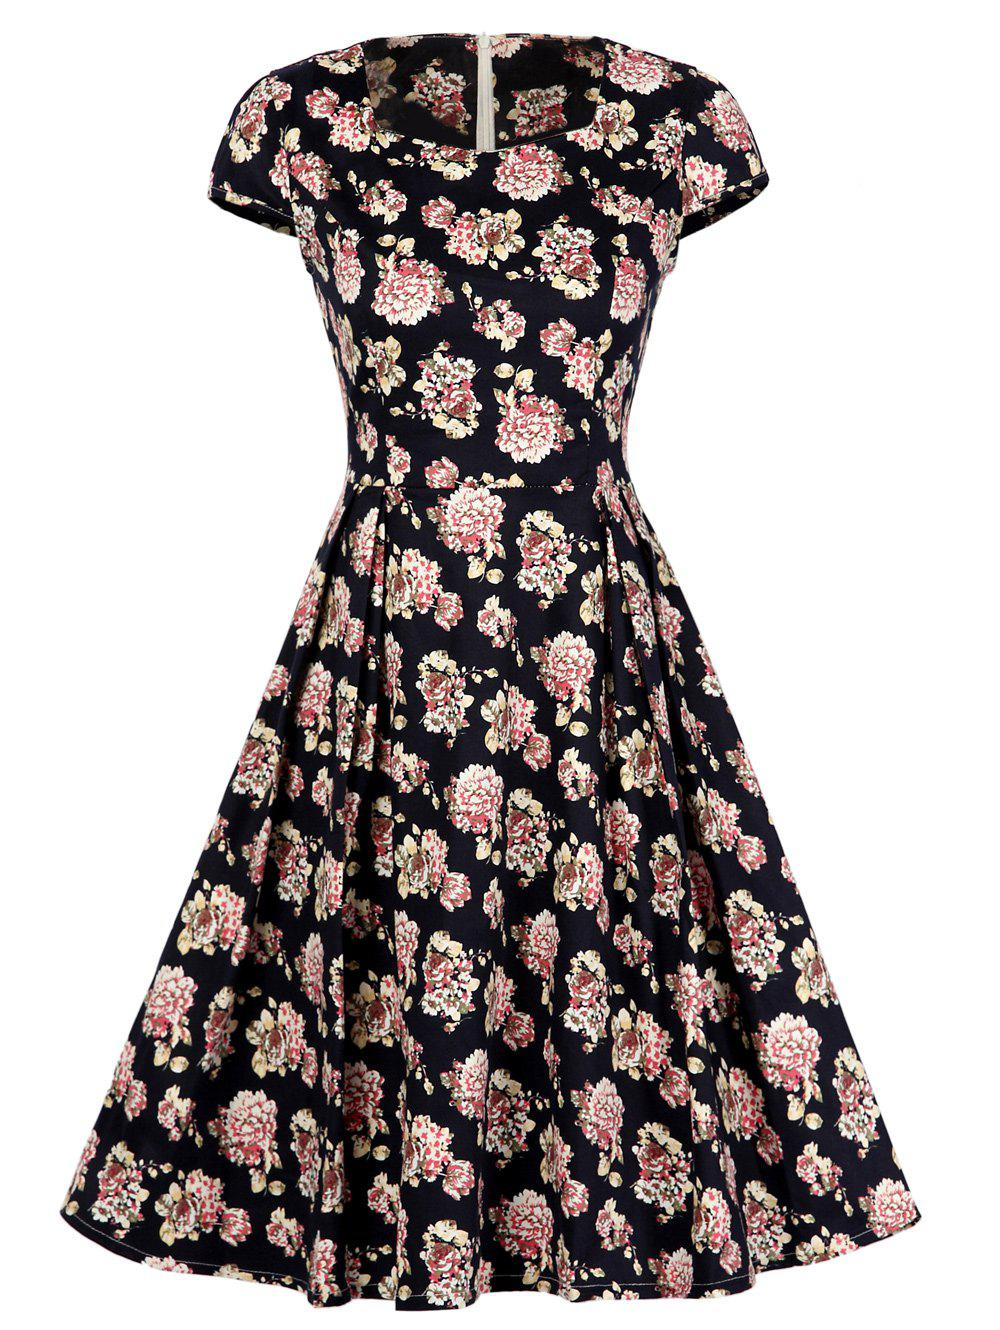 Square Collar Floral Print Vintage Swing Dress - FLORAL XL